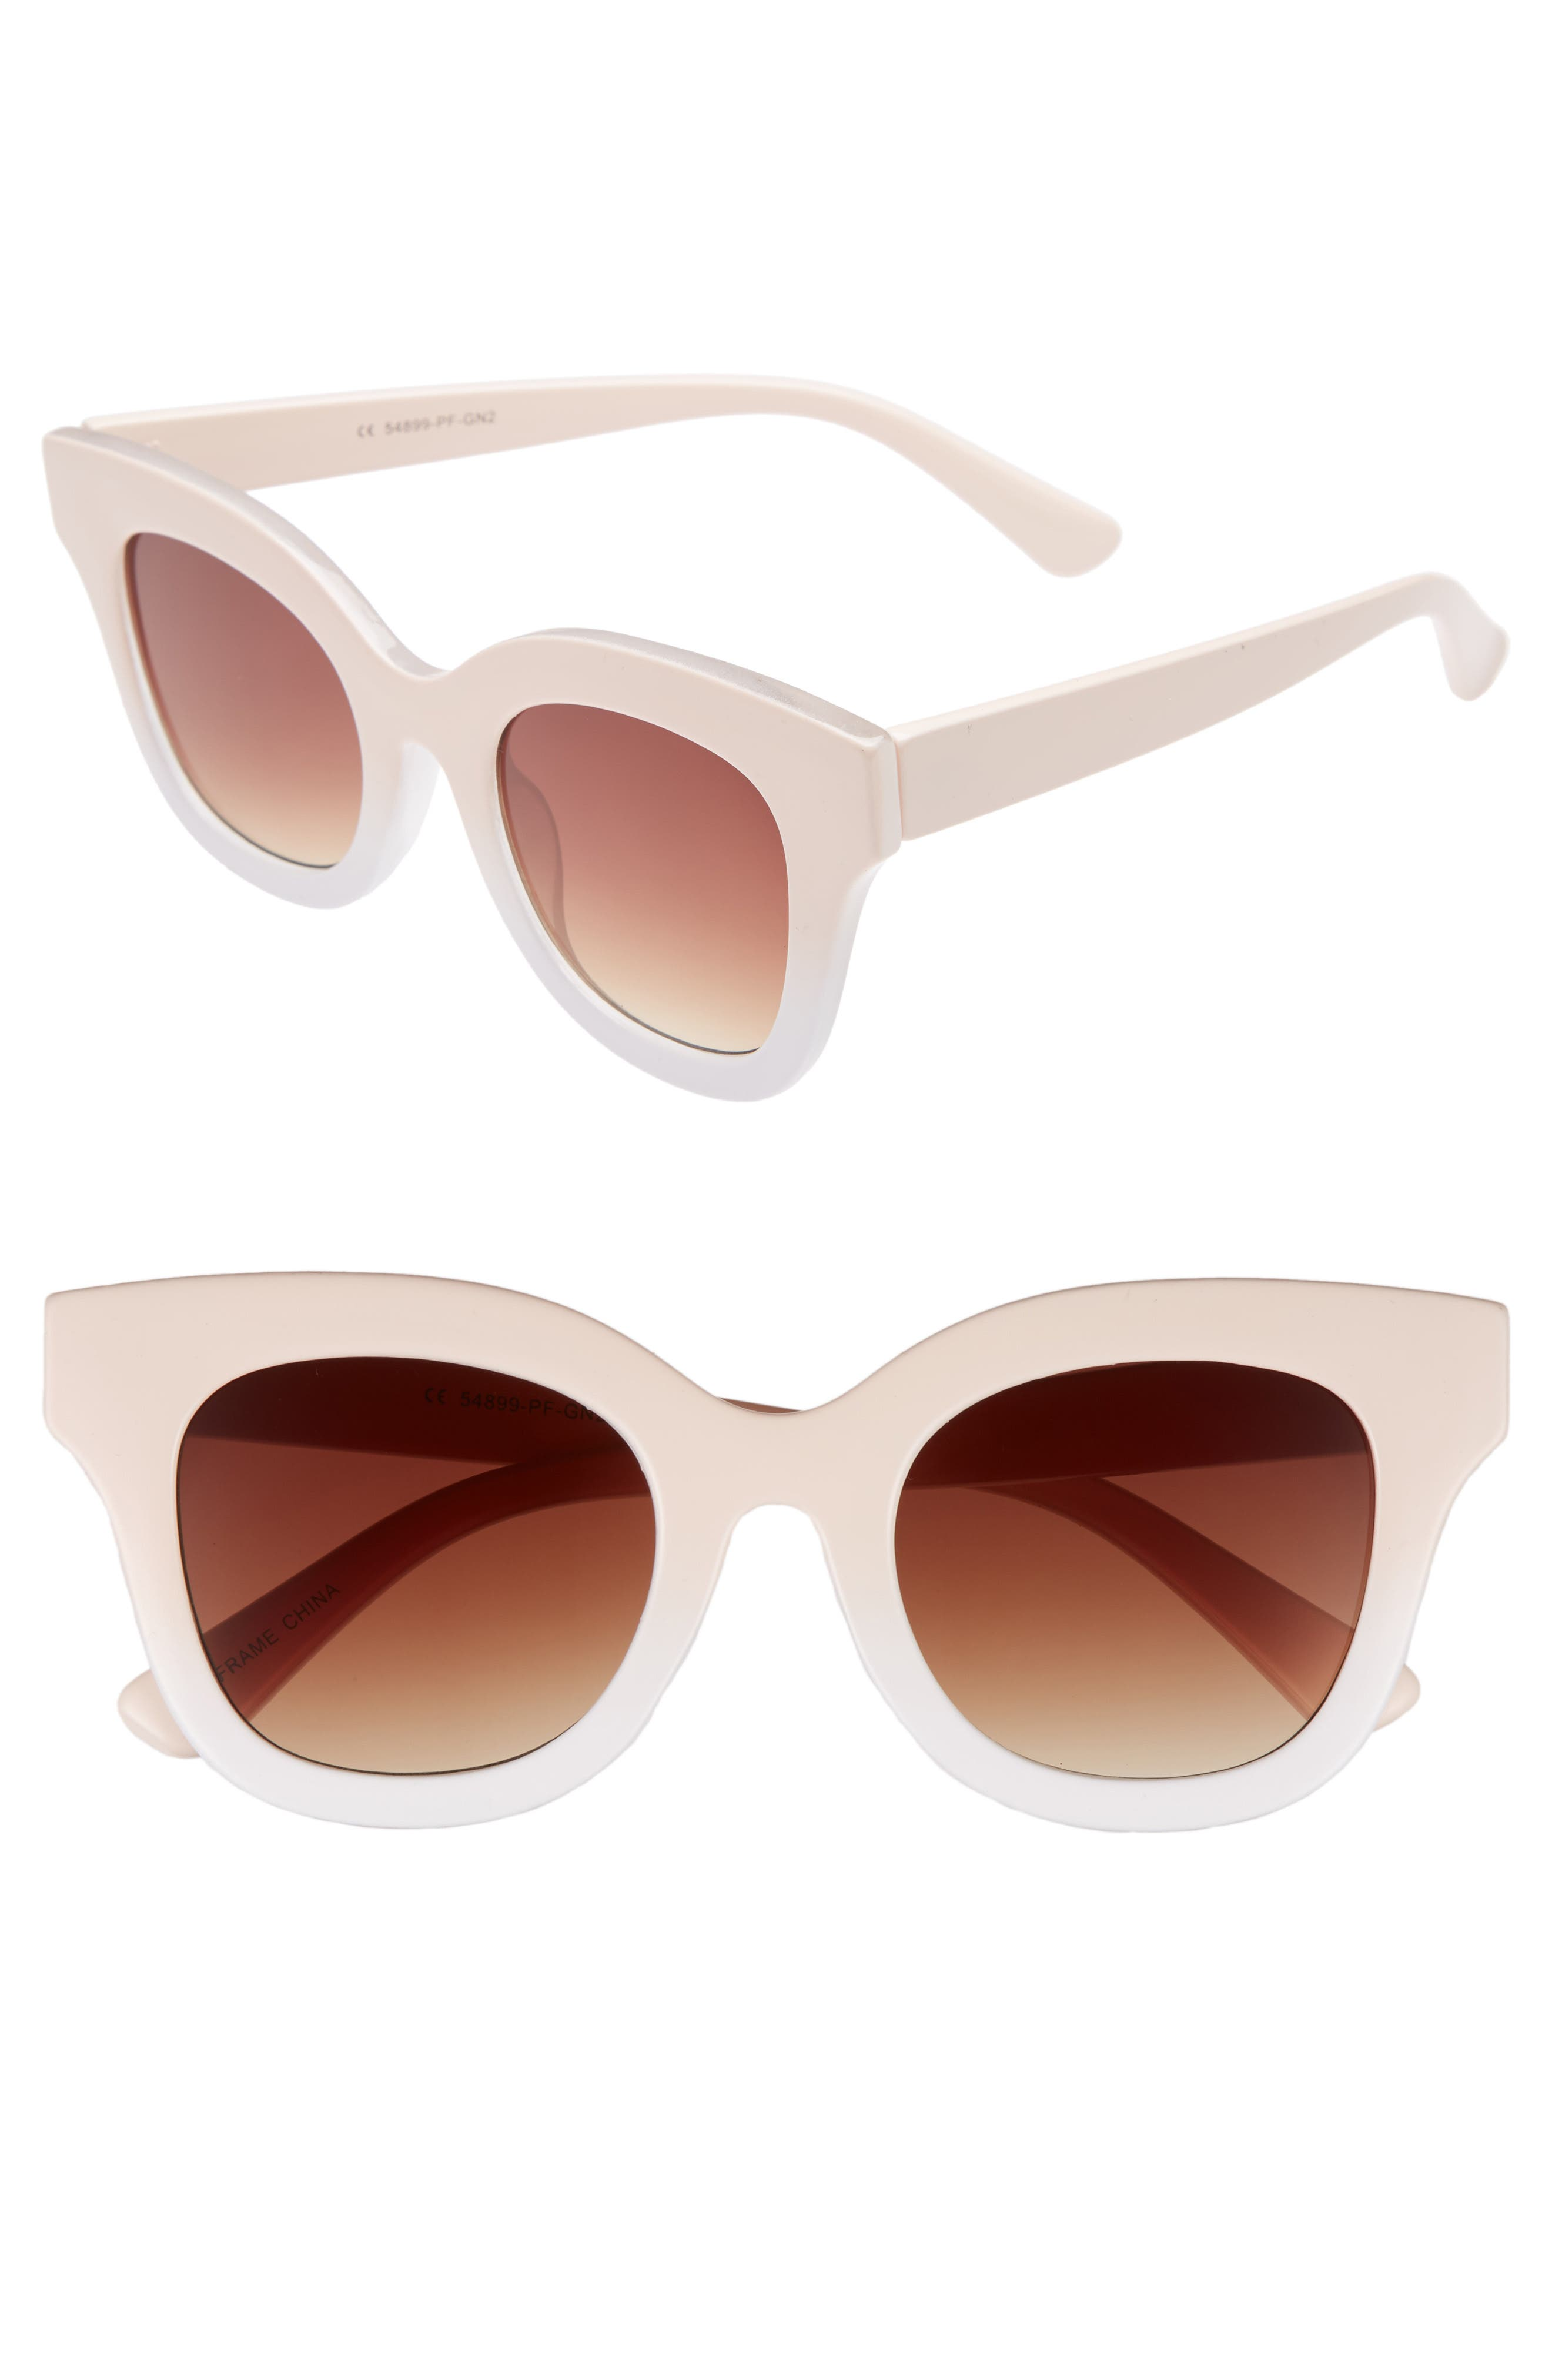 Glance Eyewear 50mm Ombré Square Sunglasses